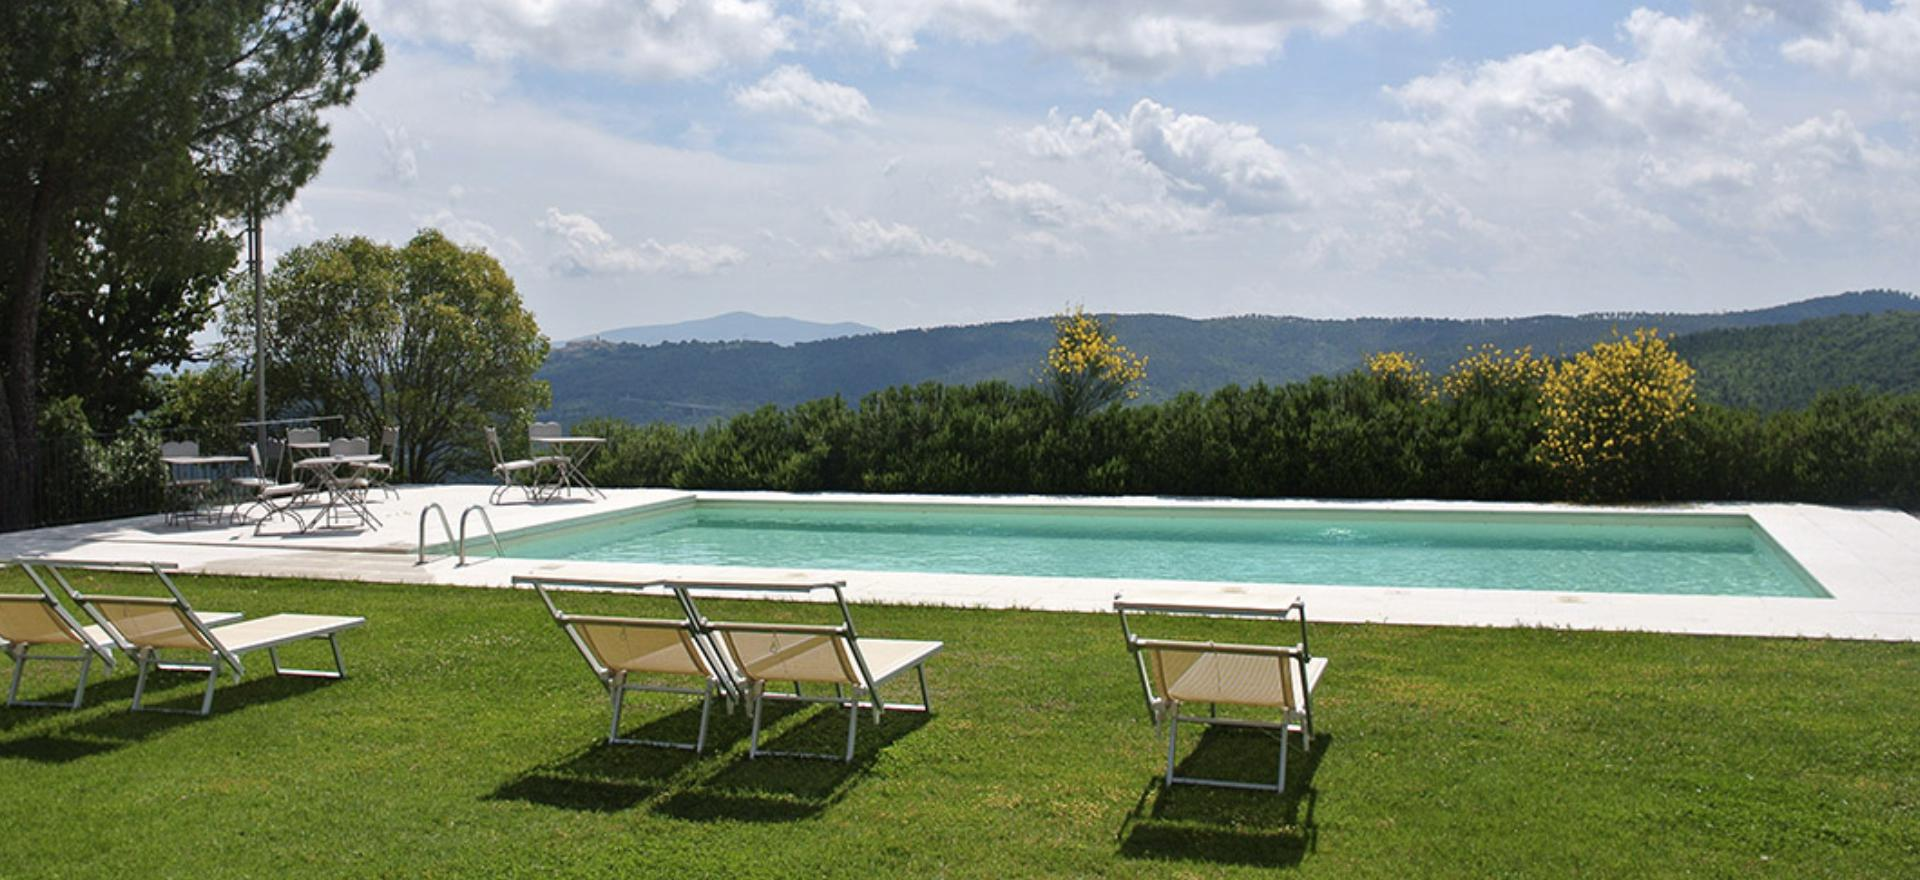 Agriturismo Tuscany Agriturismo between vineyards south of Siena